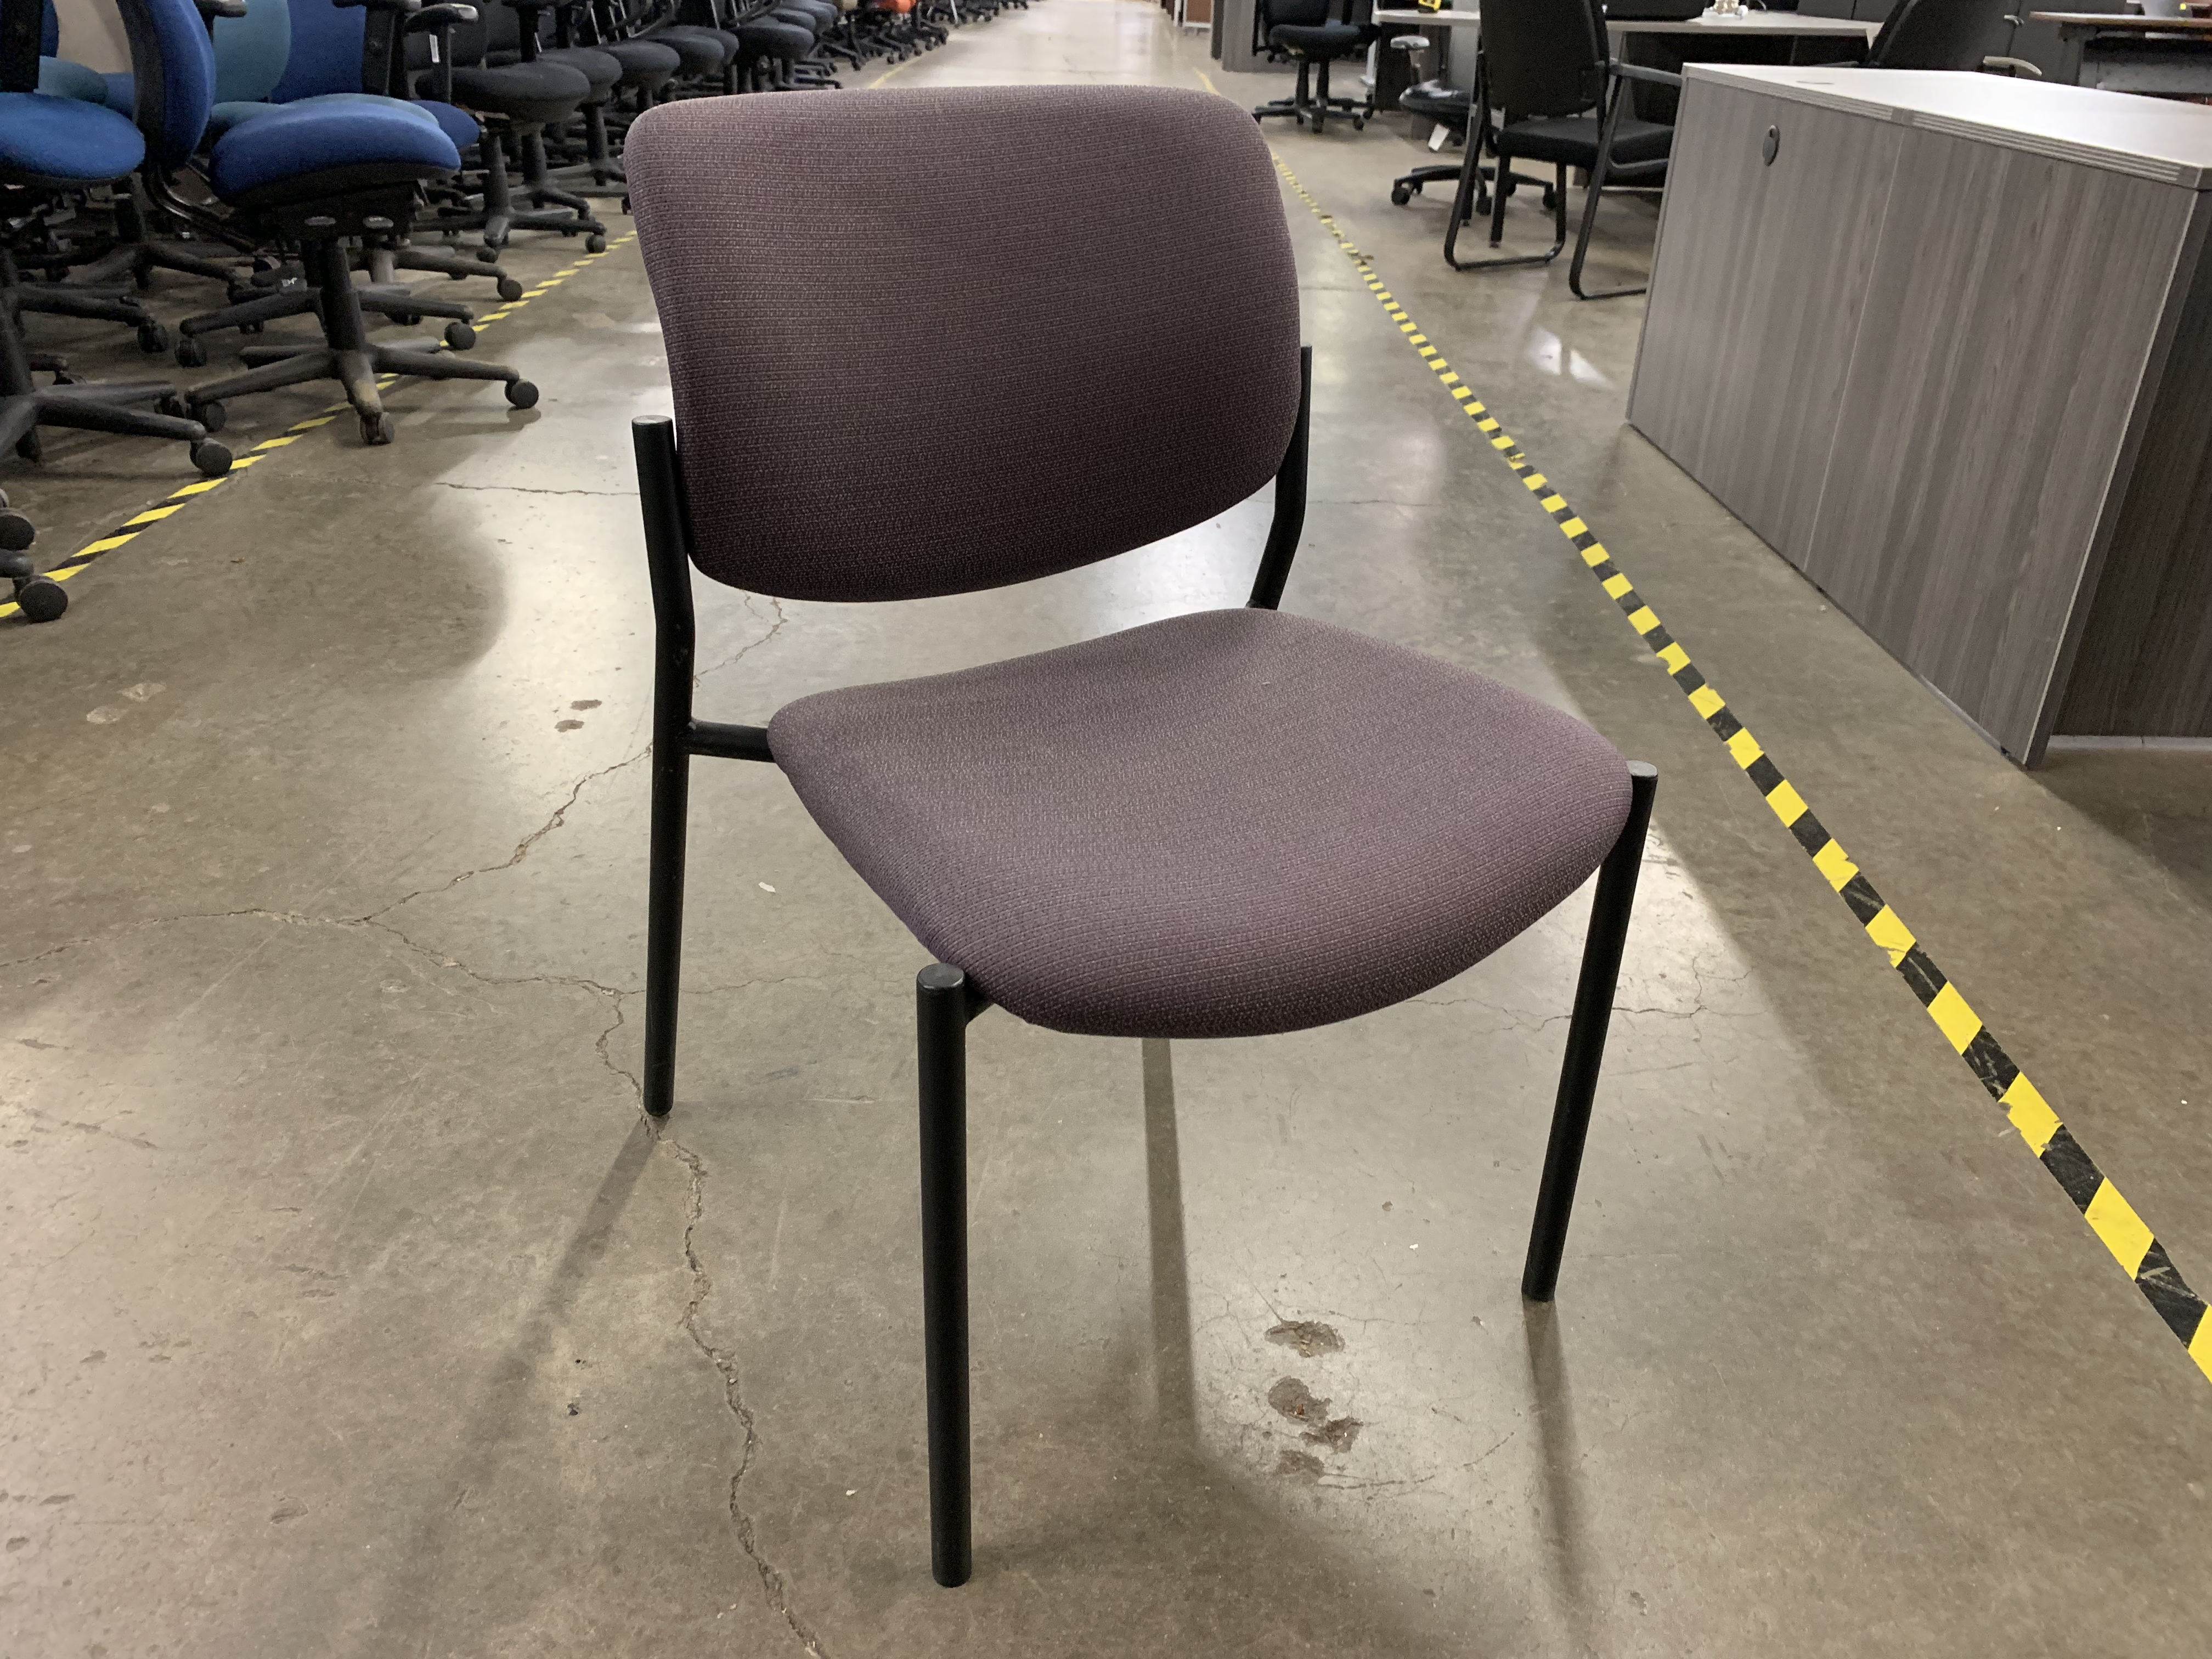 Sitonit Freelance Stacker Chair Capital Choice Office